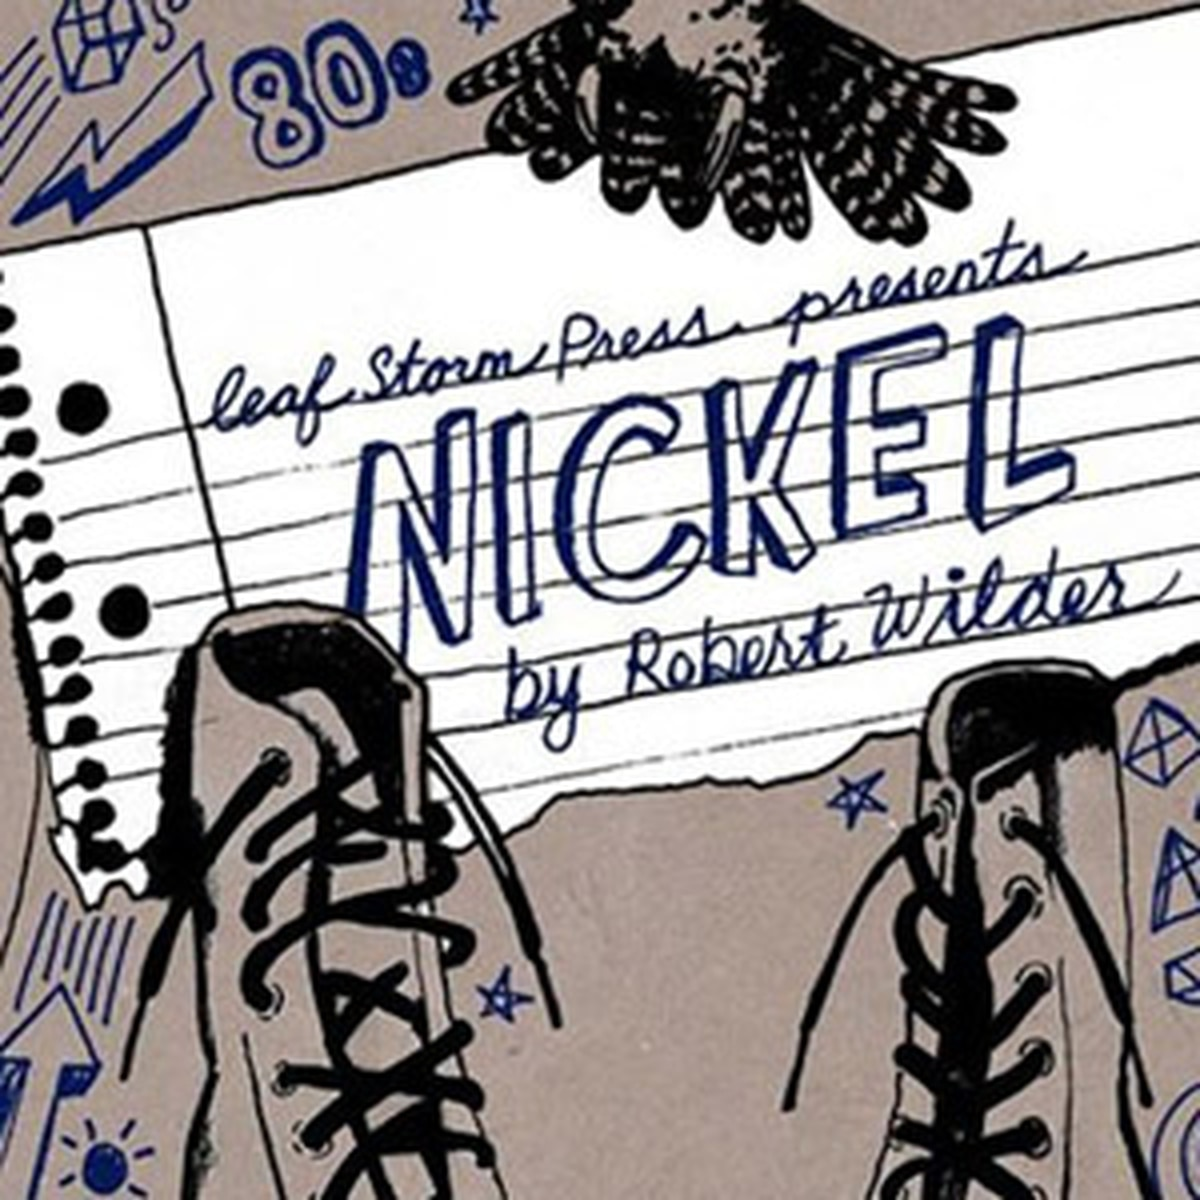 Robert Wilder: Nickel Former SFR columnist Rob Wilder presents his newest novel about a teenager who faces some rough challenges. This is also known as life. More Info>>